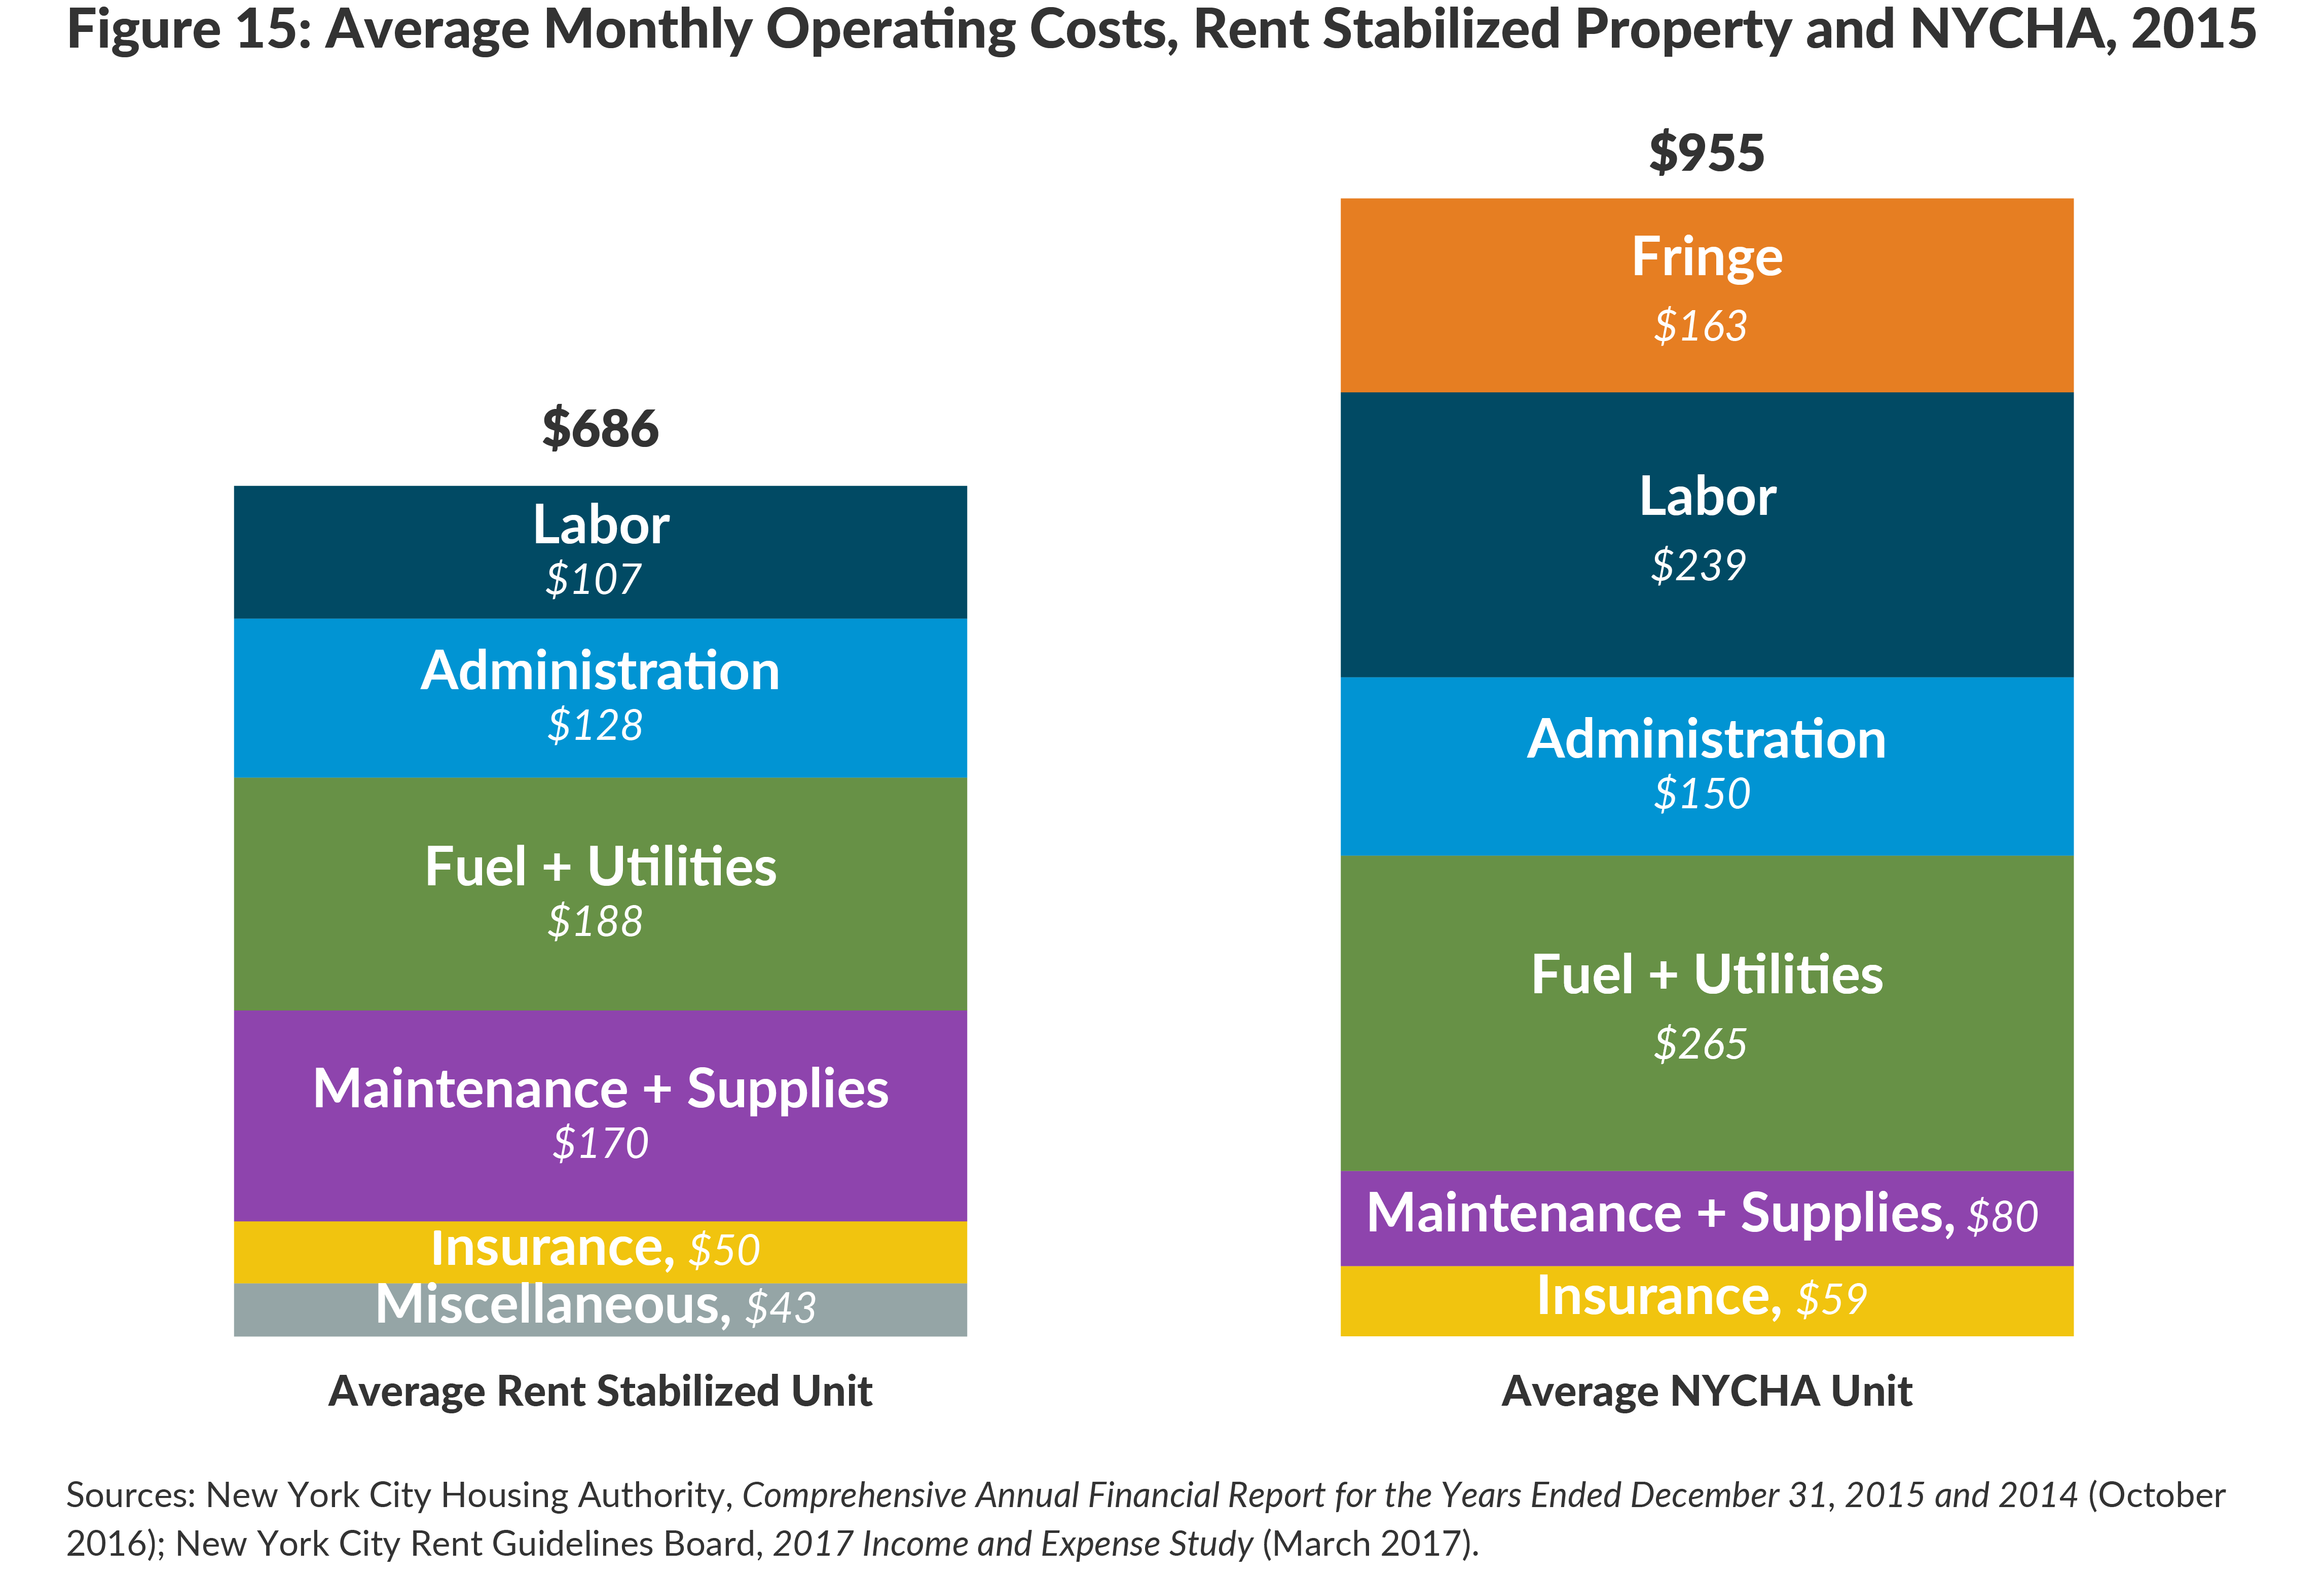 Figure 15: Average Monthly Operating Costs, Rent Stabilized Property and NYCHA, 2015